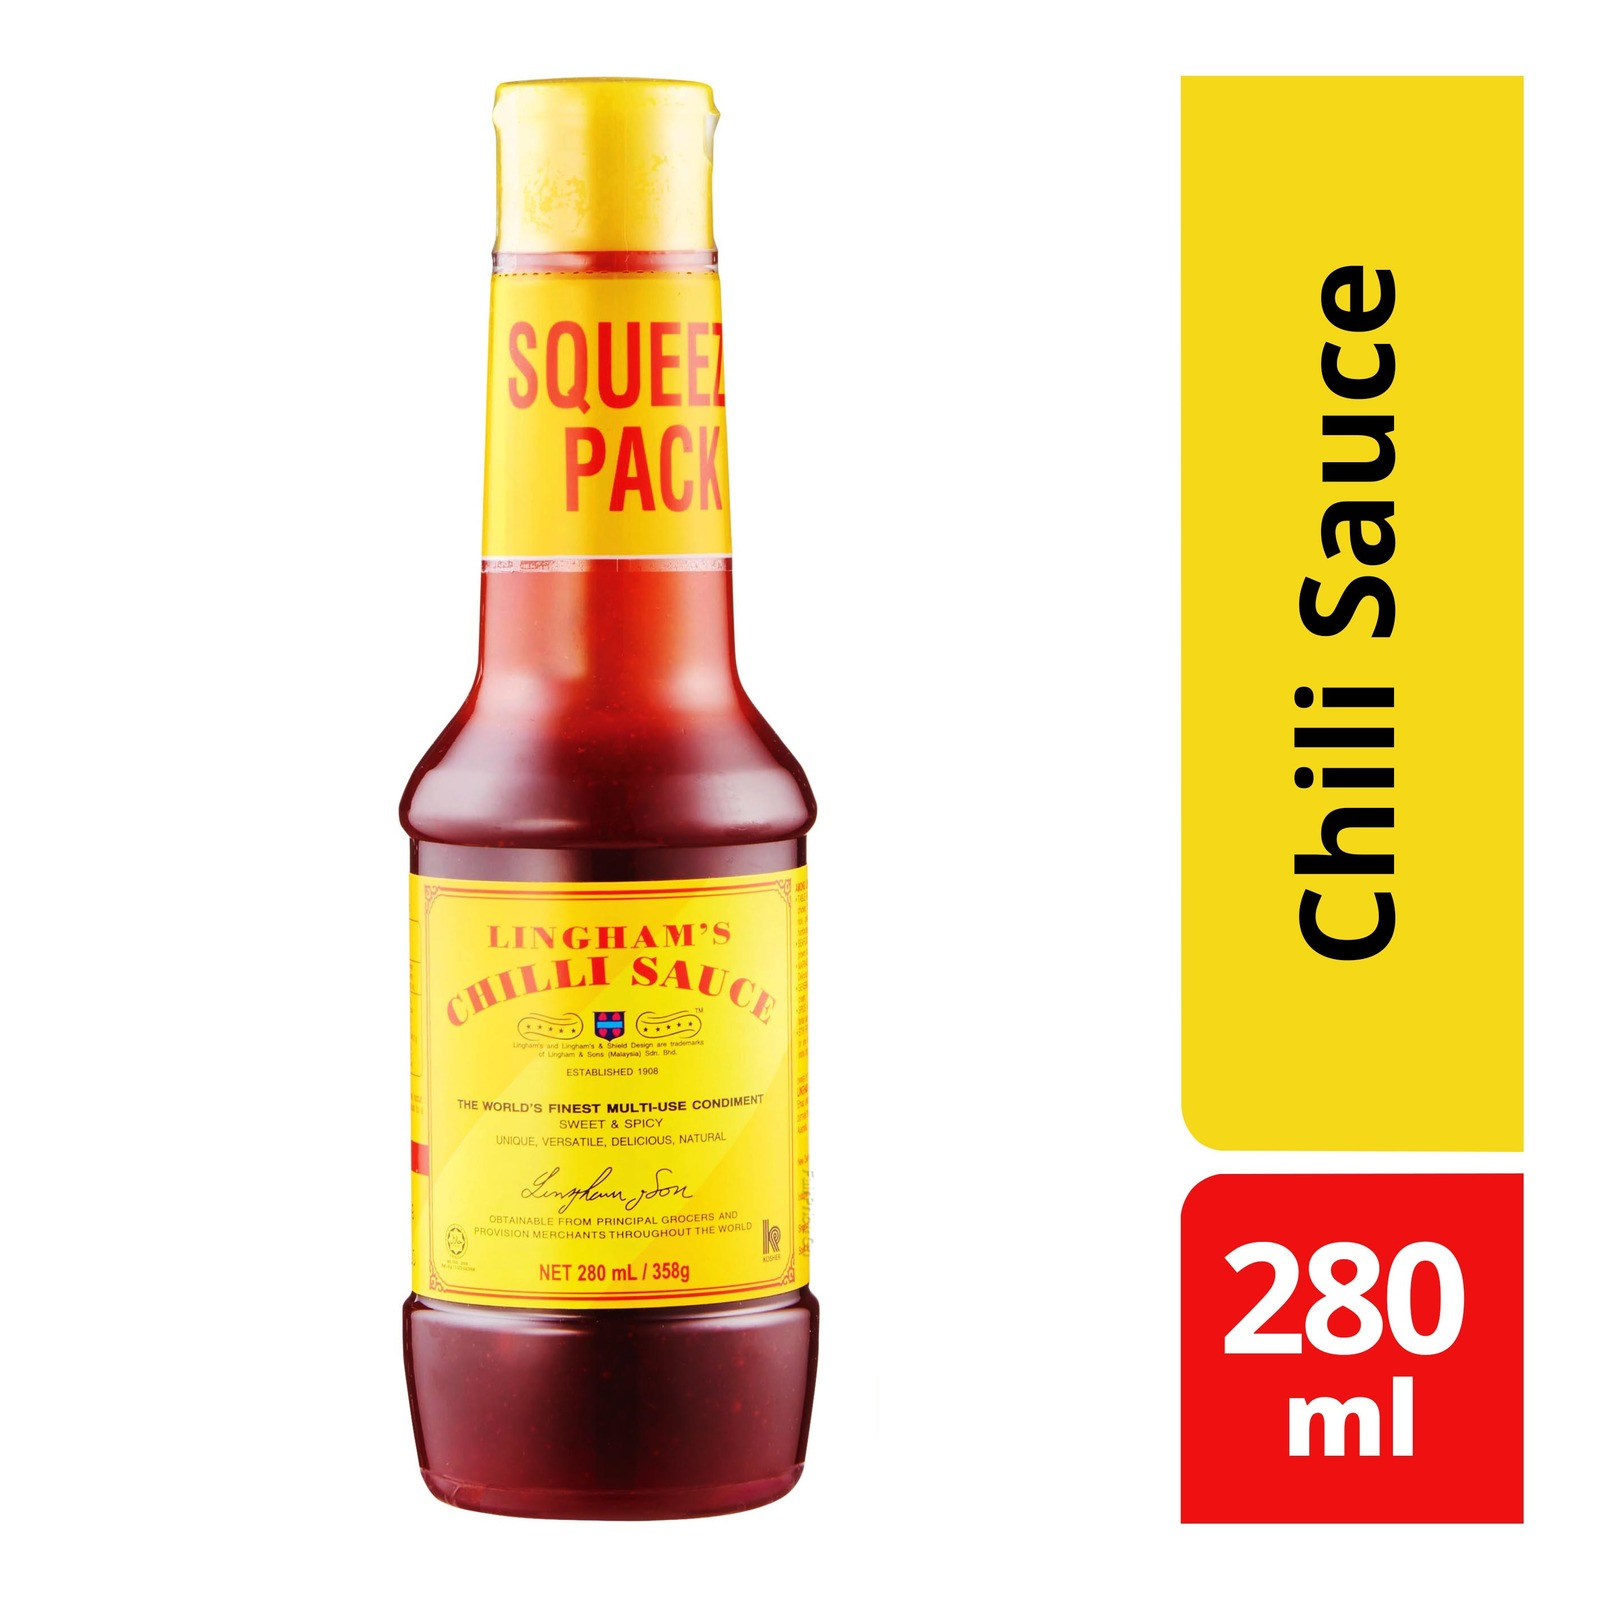 Download Lingham S Chili Sauce Squeeze Bottle Ntuc Fairprice PSD Mockup Templates